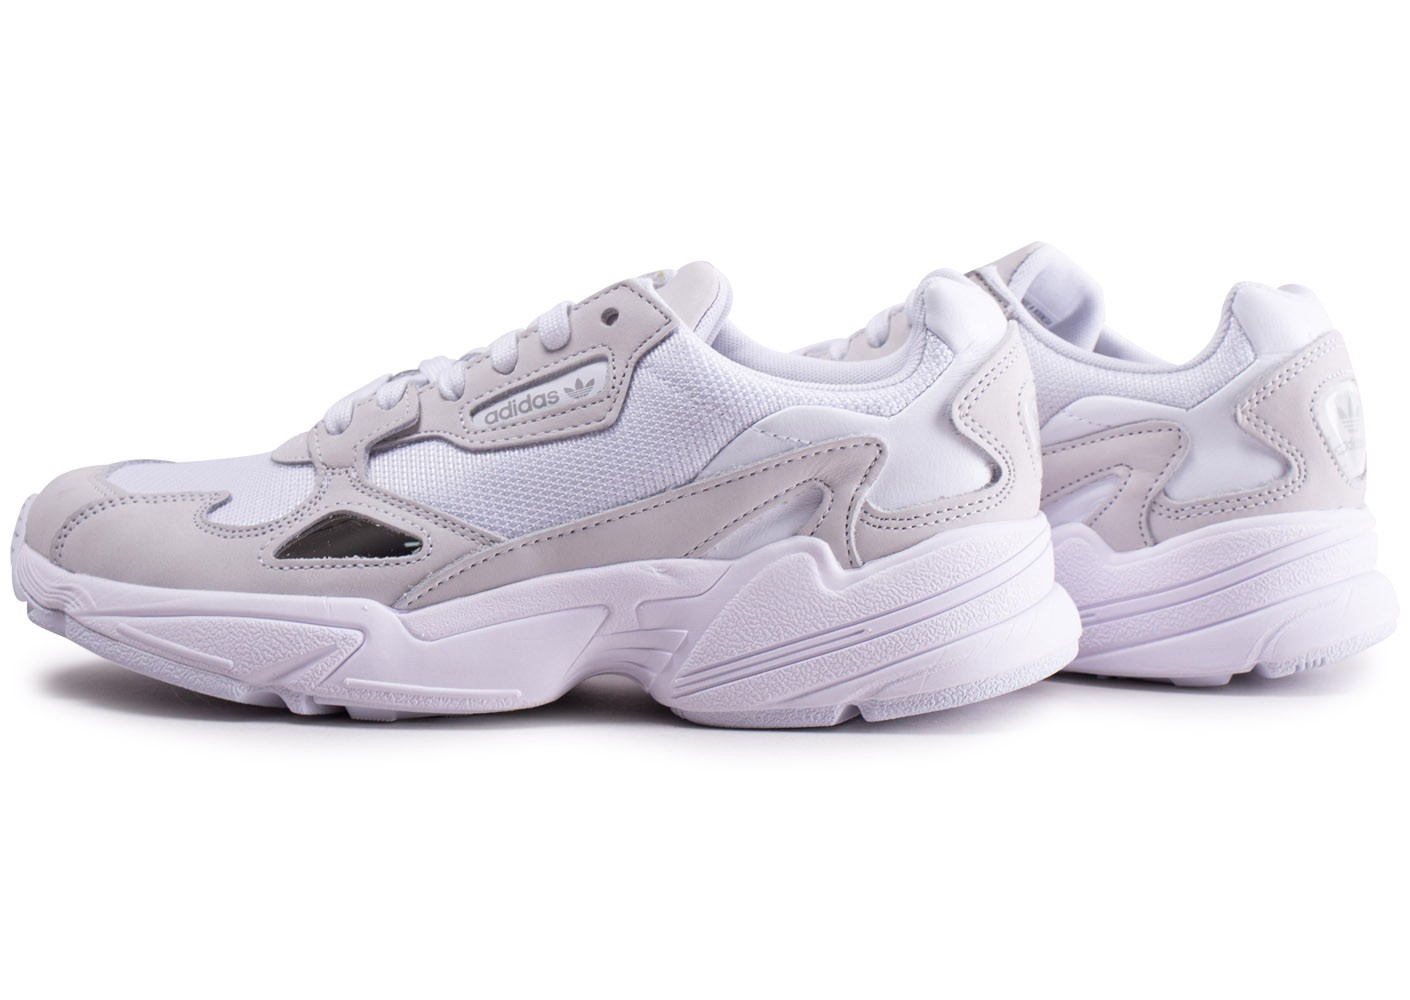 adidas Falcon blanche Chaussures Baskets homme Chausport